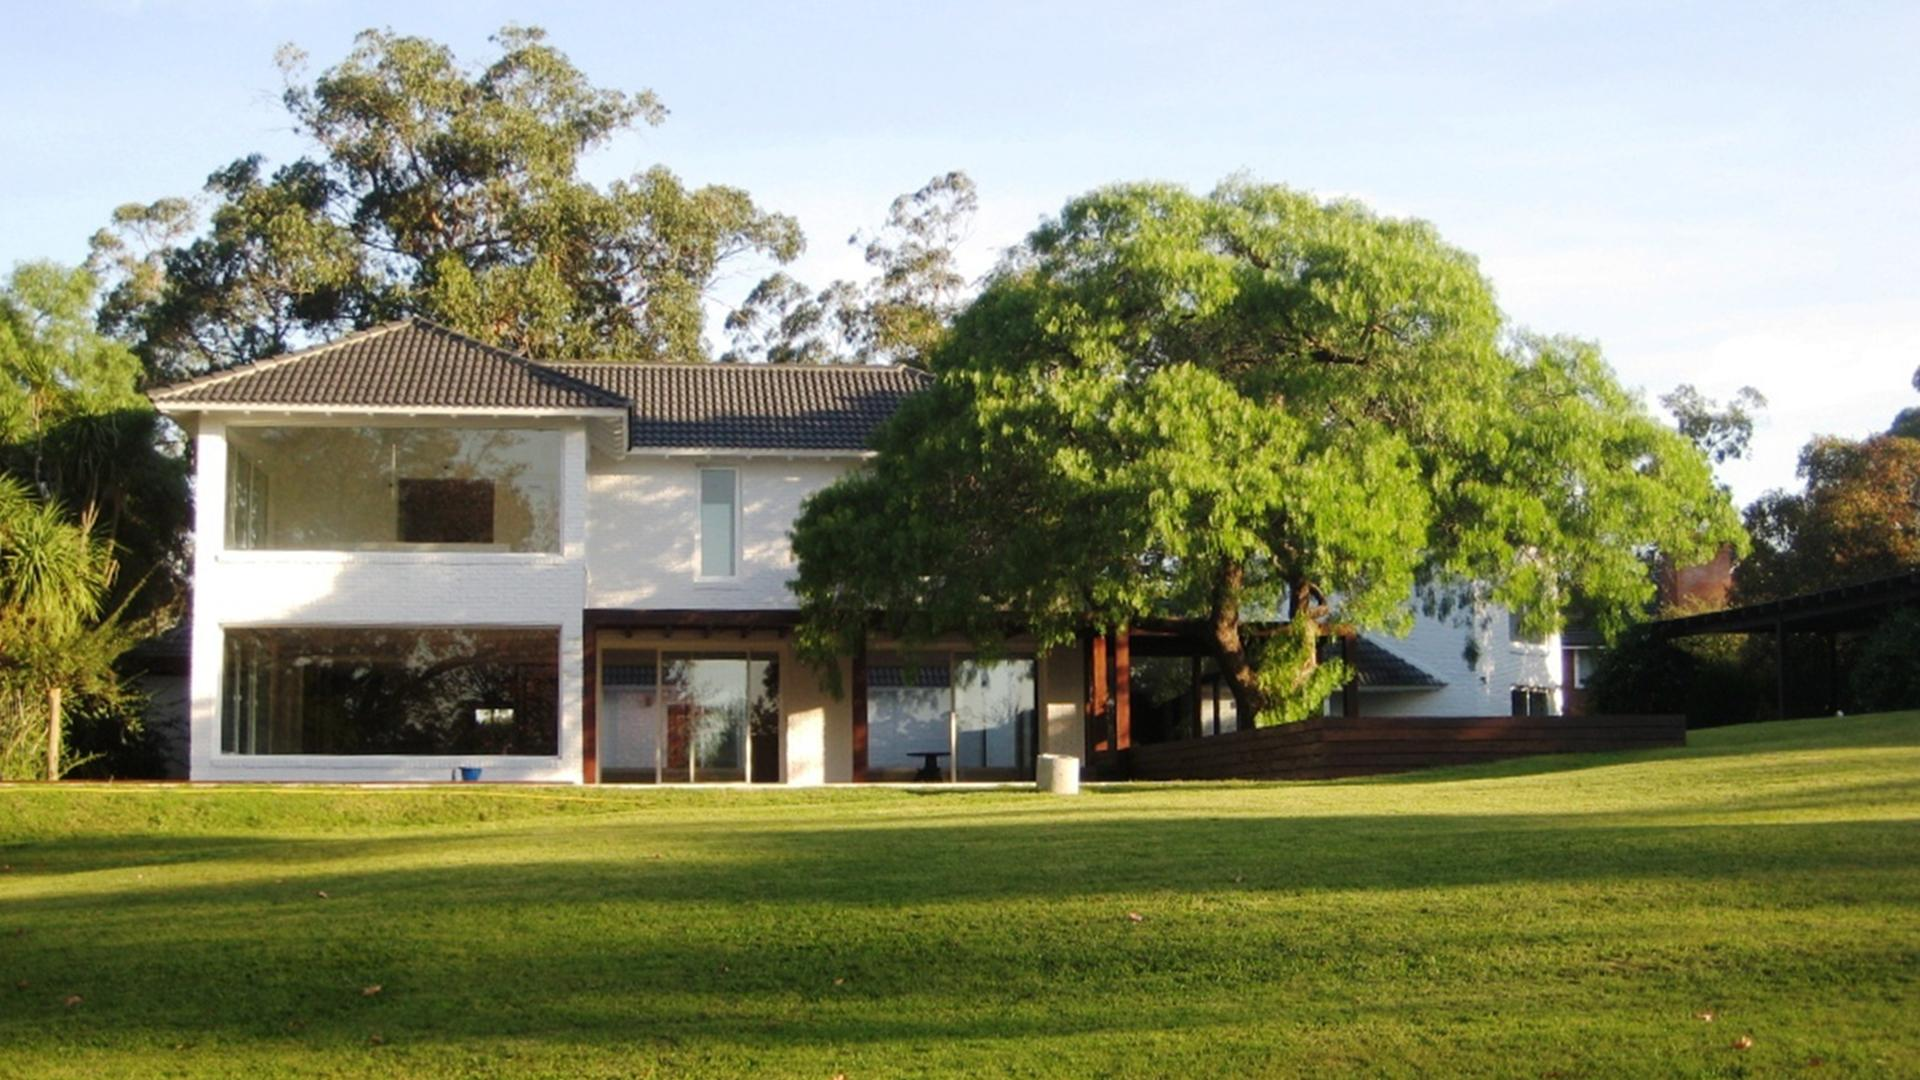 Large Luxury Villa at The Golf  located in Punta del Este, Punta del Este, Uruguay, listed by Curiocity Villas.